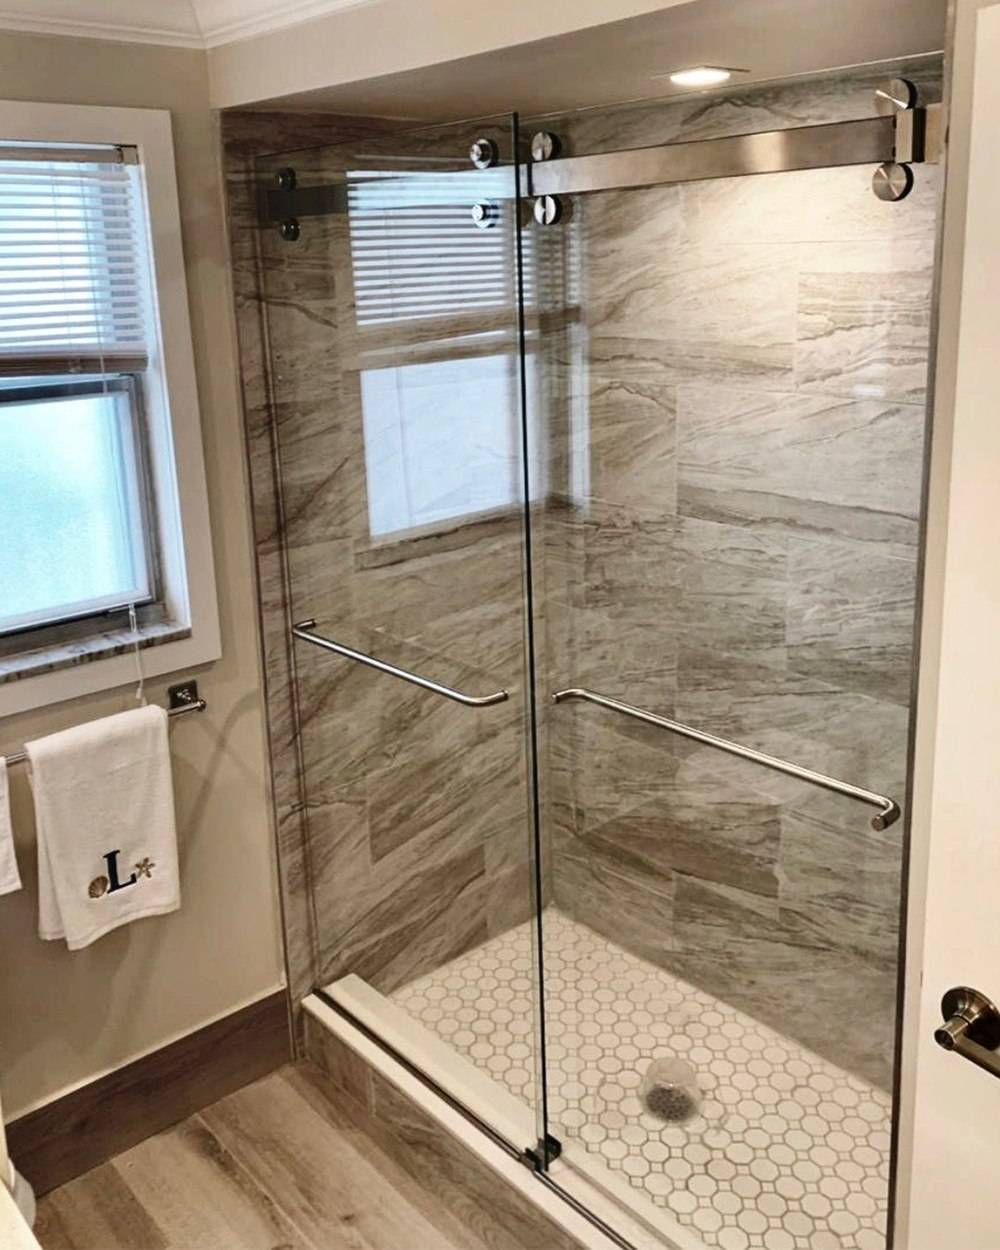 The Original Frameless Shower Doors Introduces Swinging Shower Doors